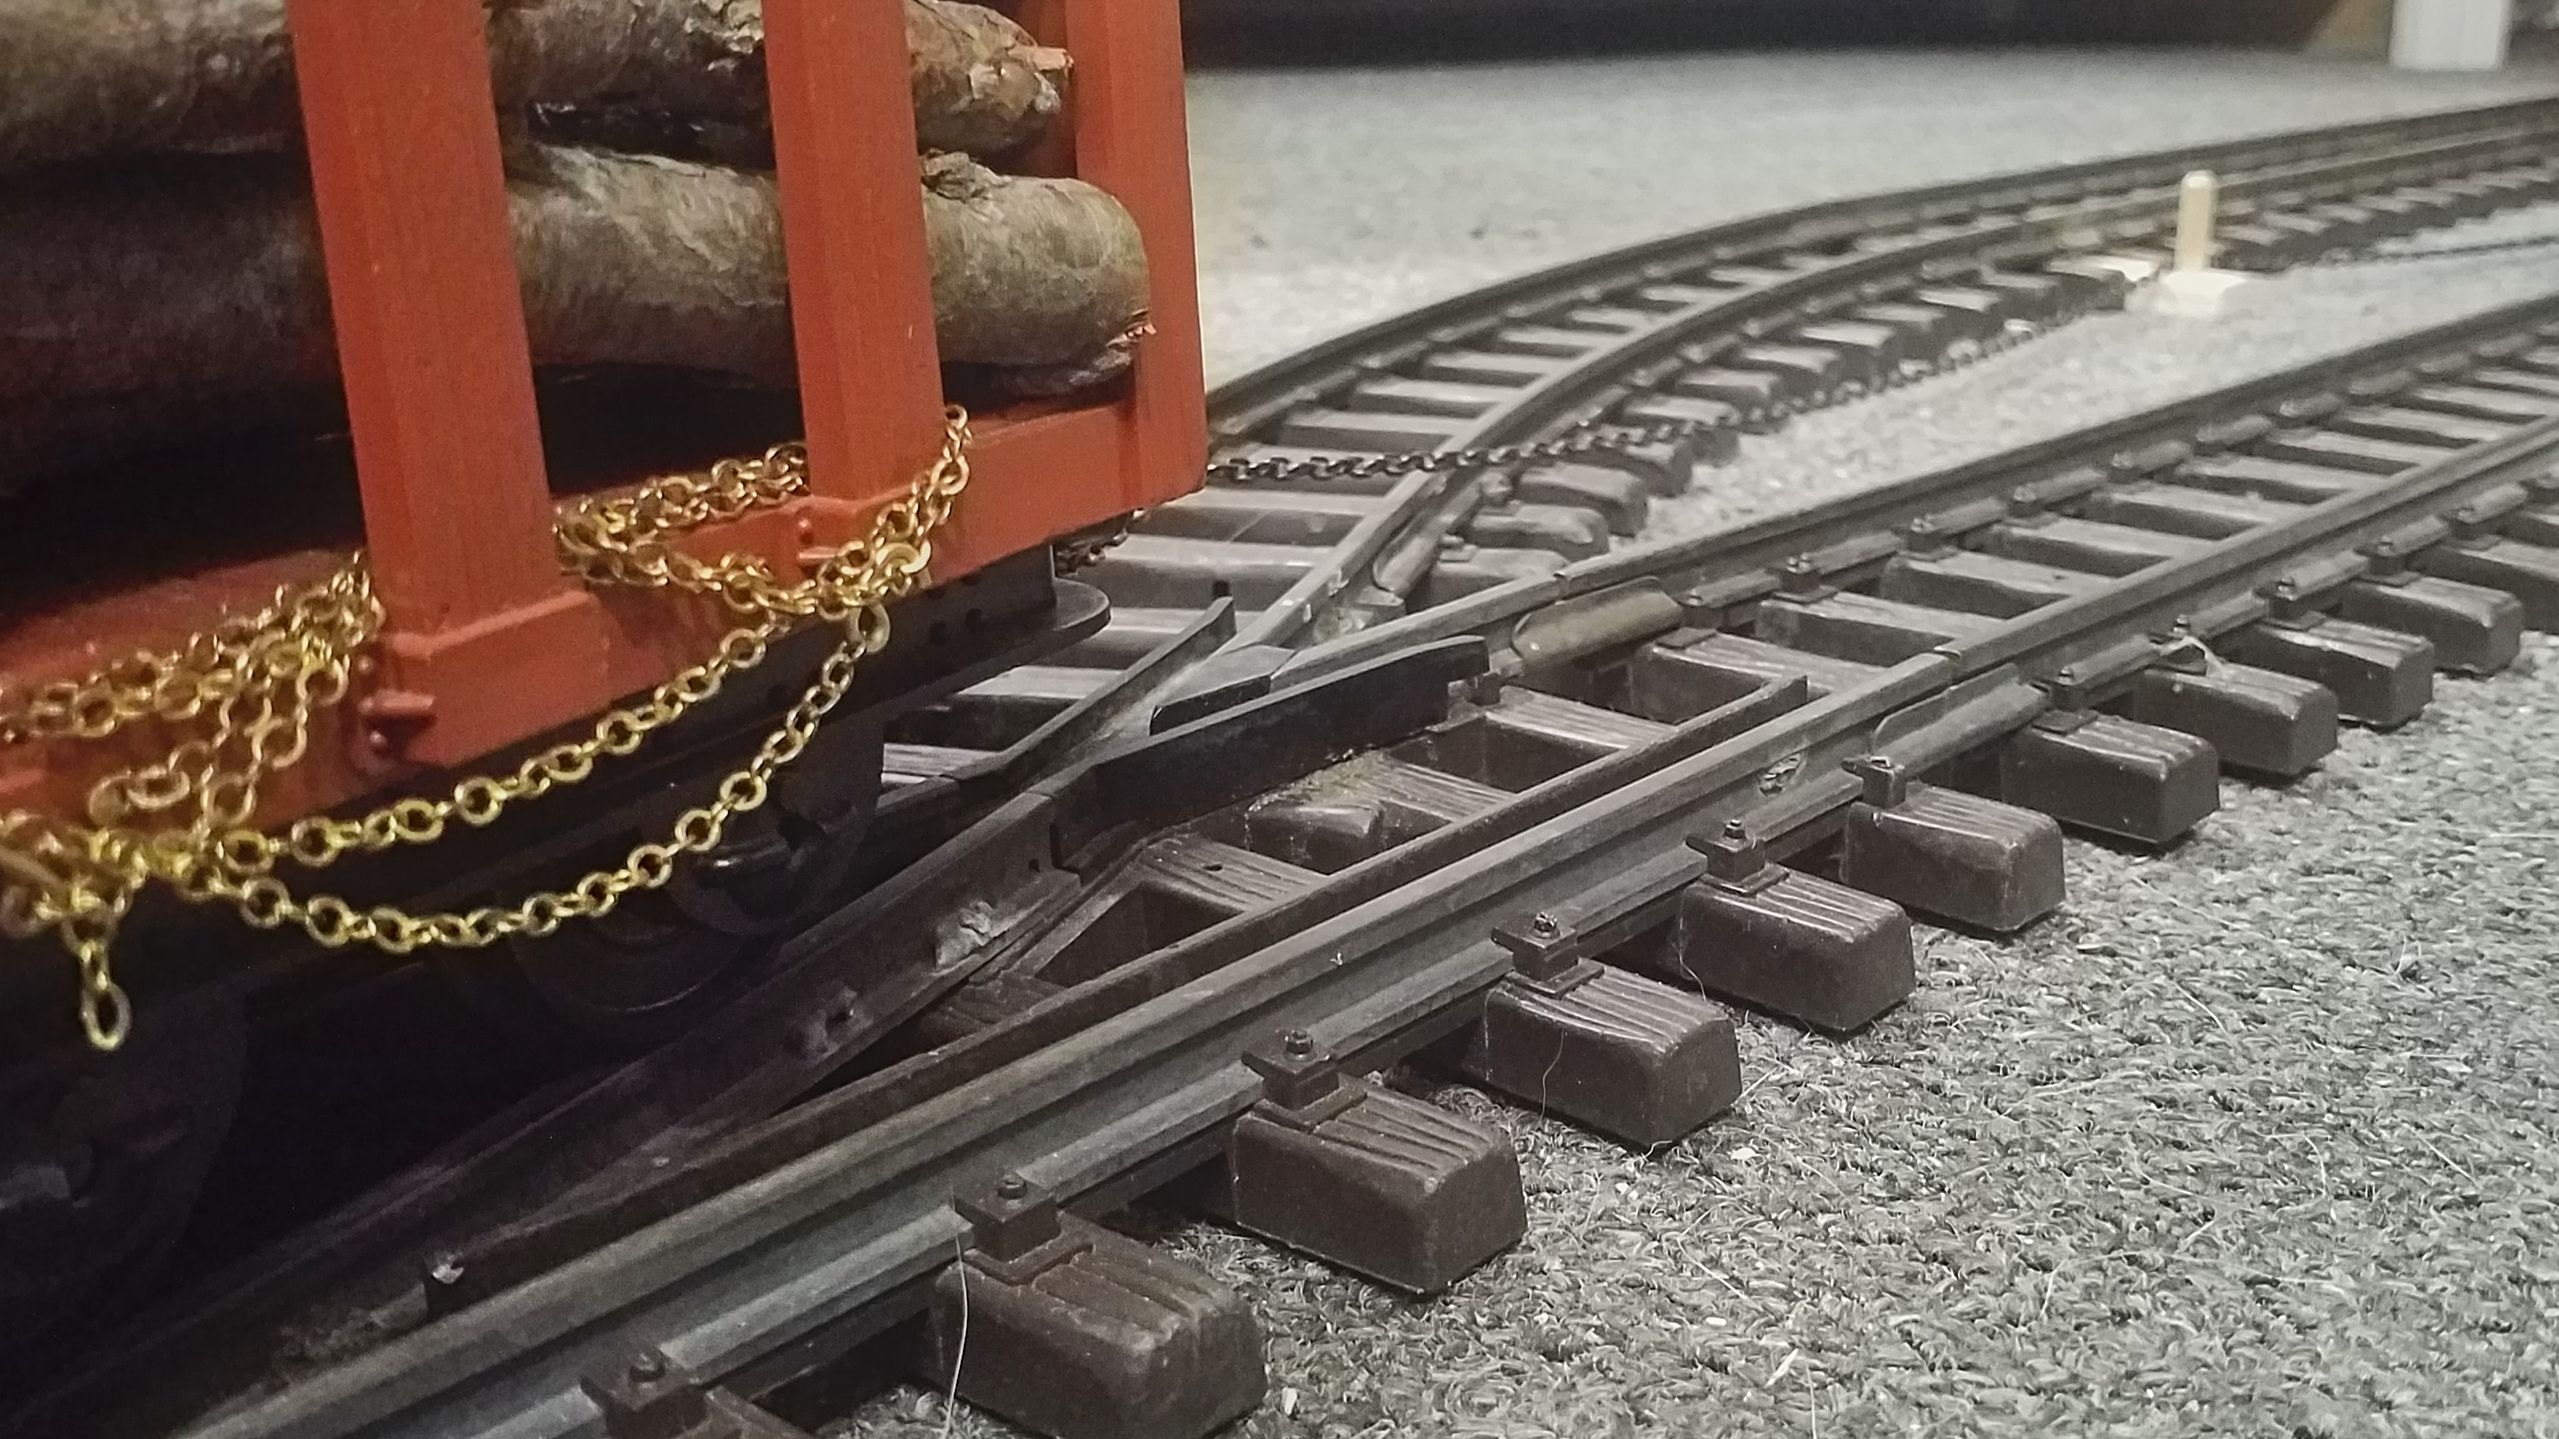 The bollard ensures that the chain's pulling force won't derail the waggon on the frog.